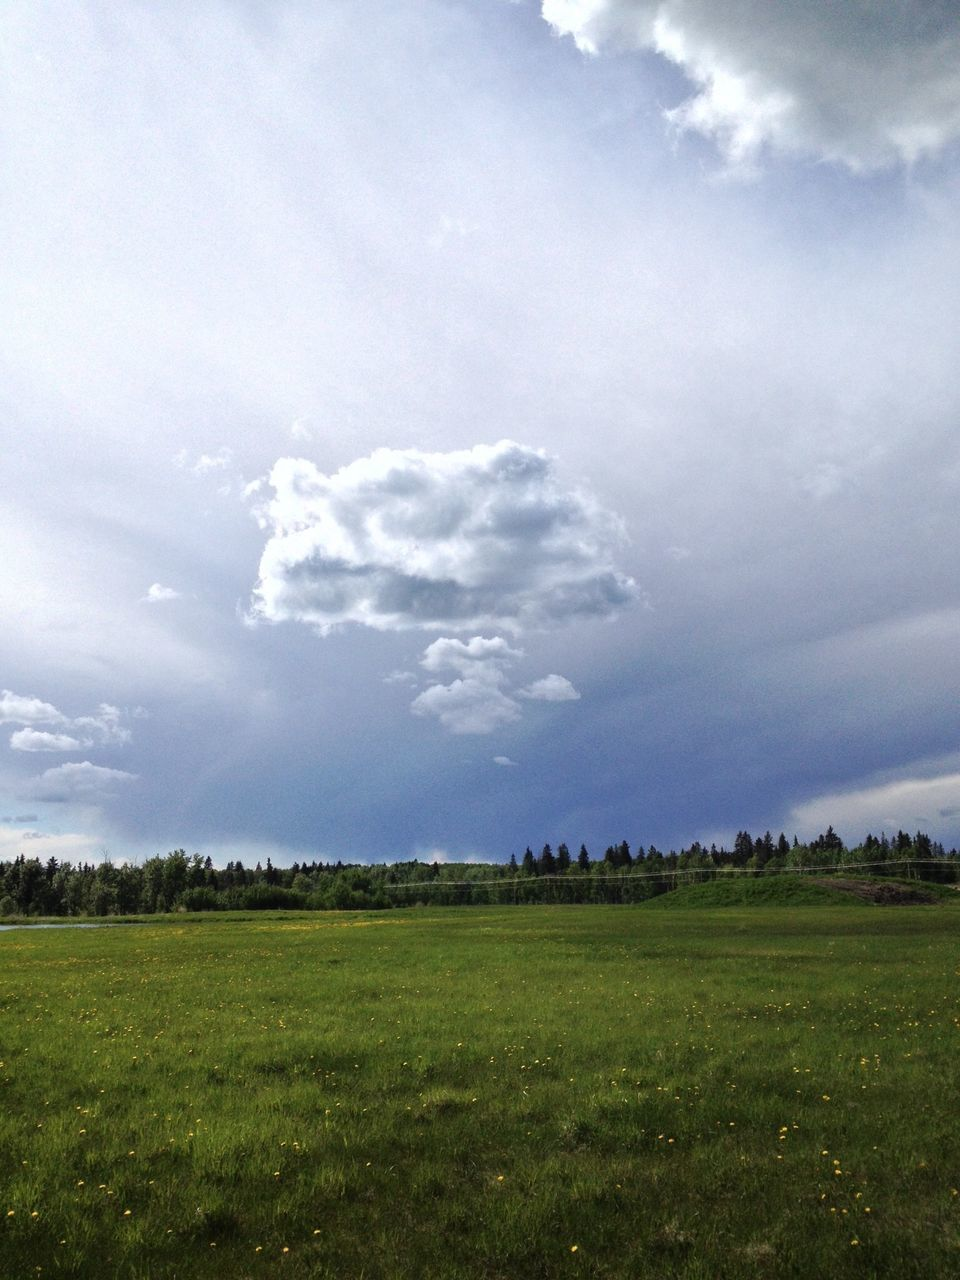 Grassy Landscape Against Cloudy Sky